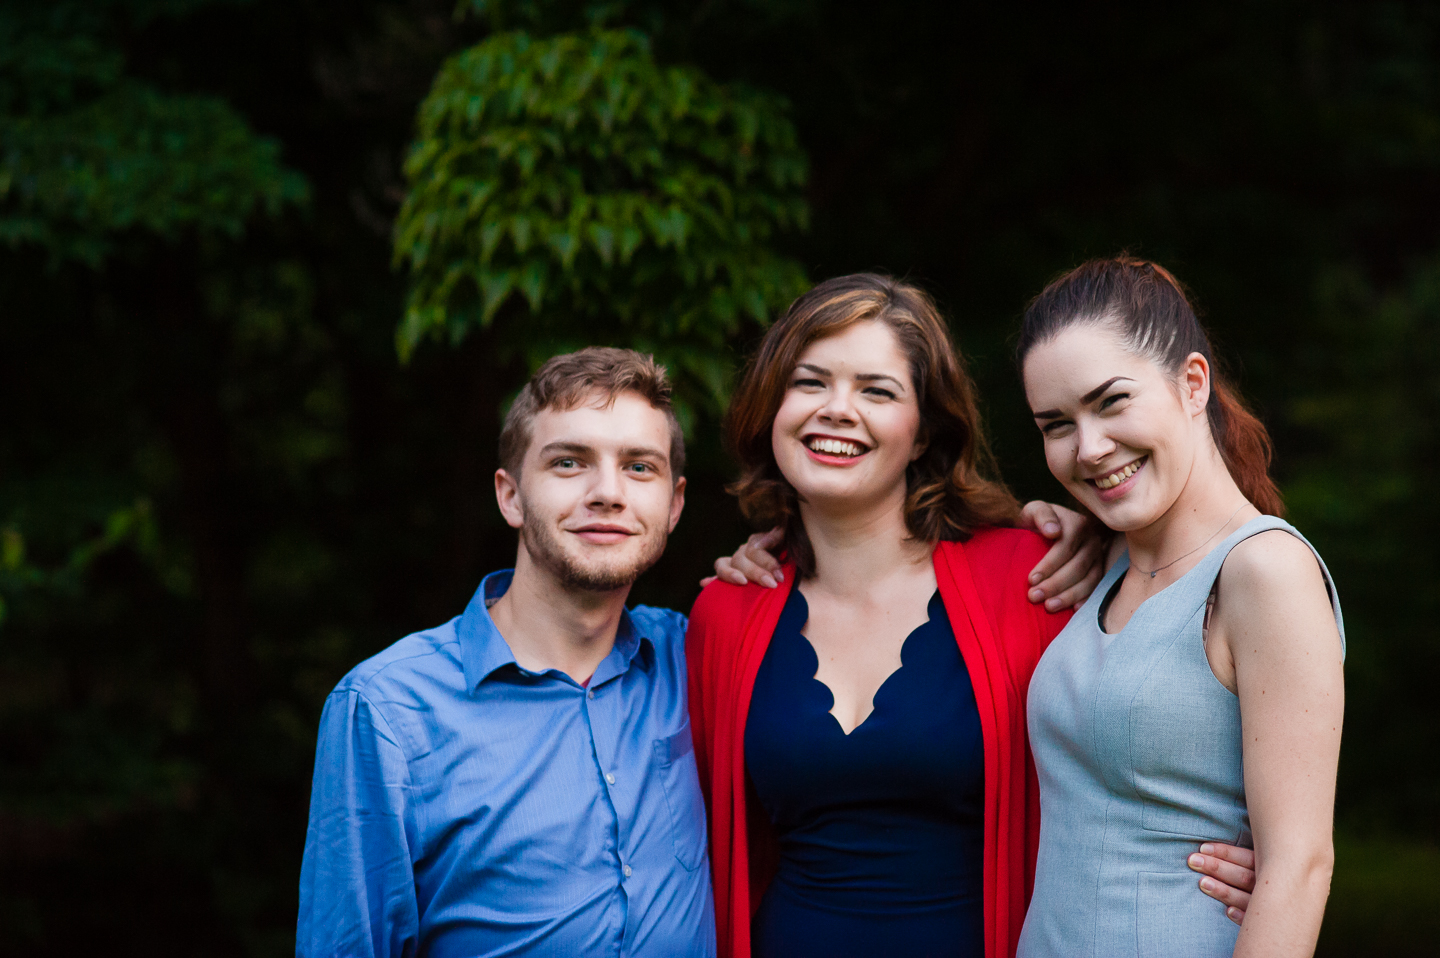 bride and her two siblings smile for a quick family picture